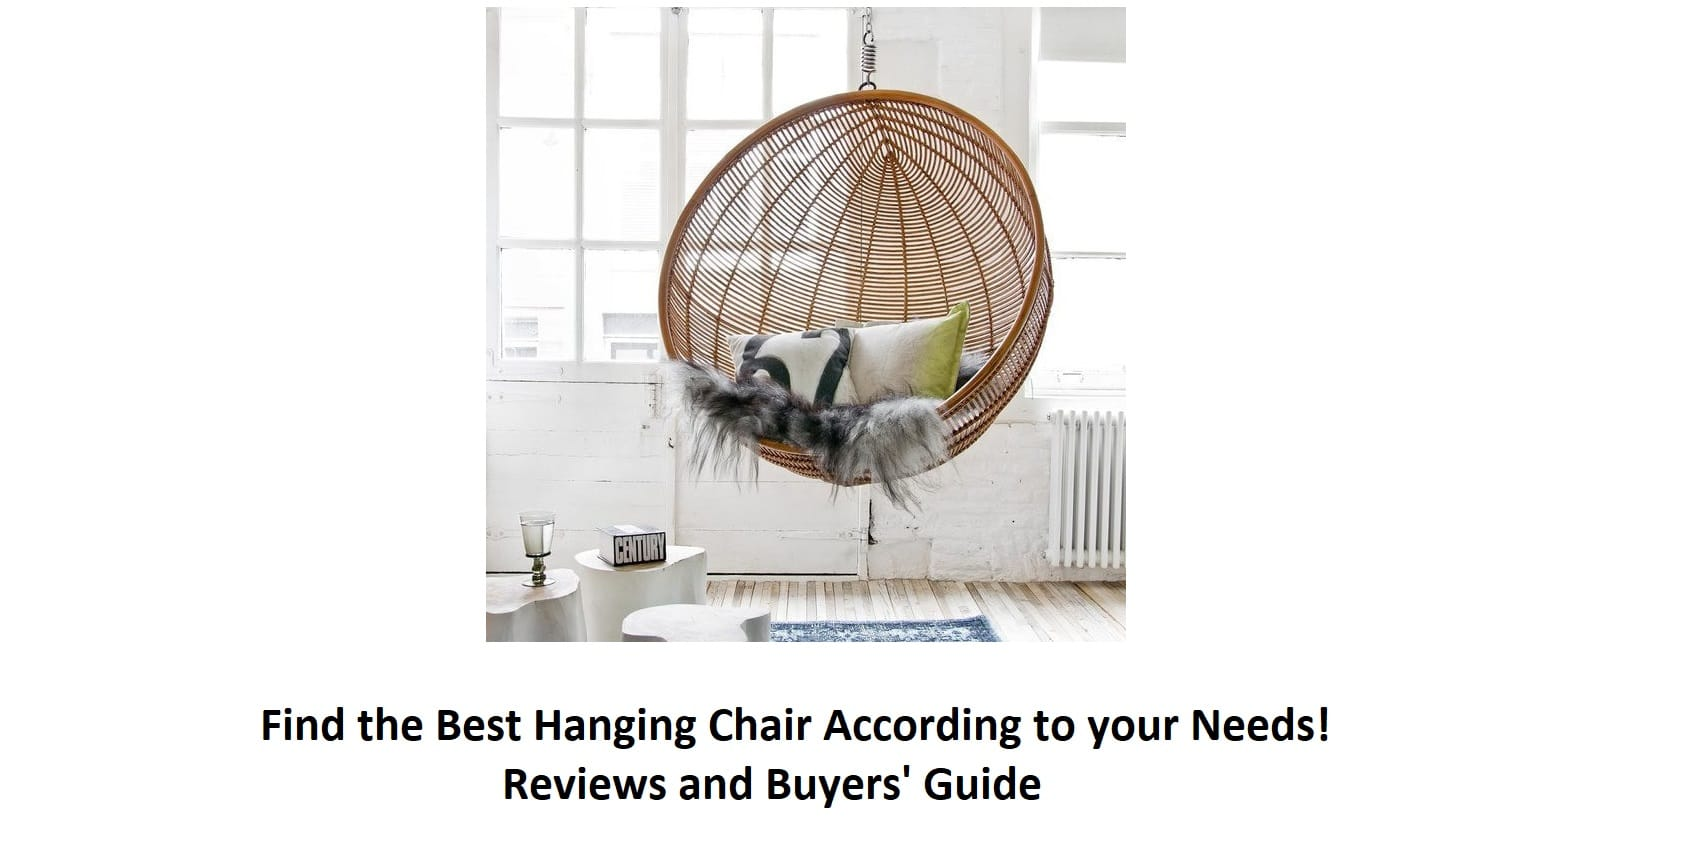 27c5d3318a0 ▷ Find the Best Hanging Chair According to your Needs - Guide  2019